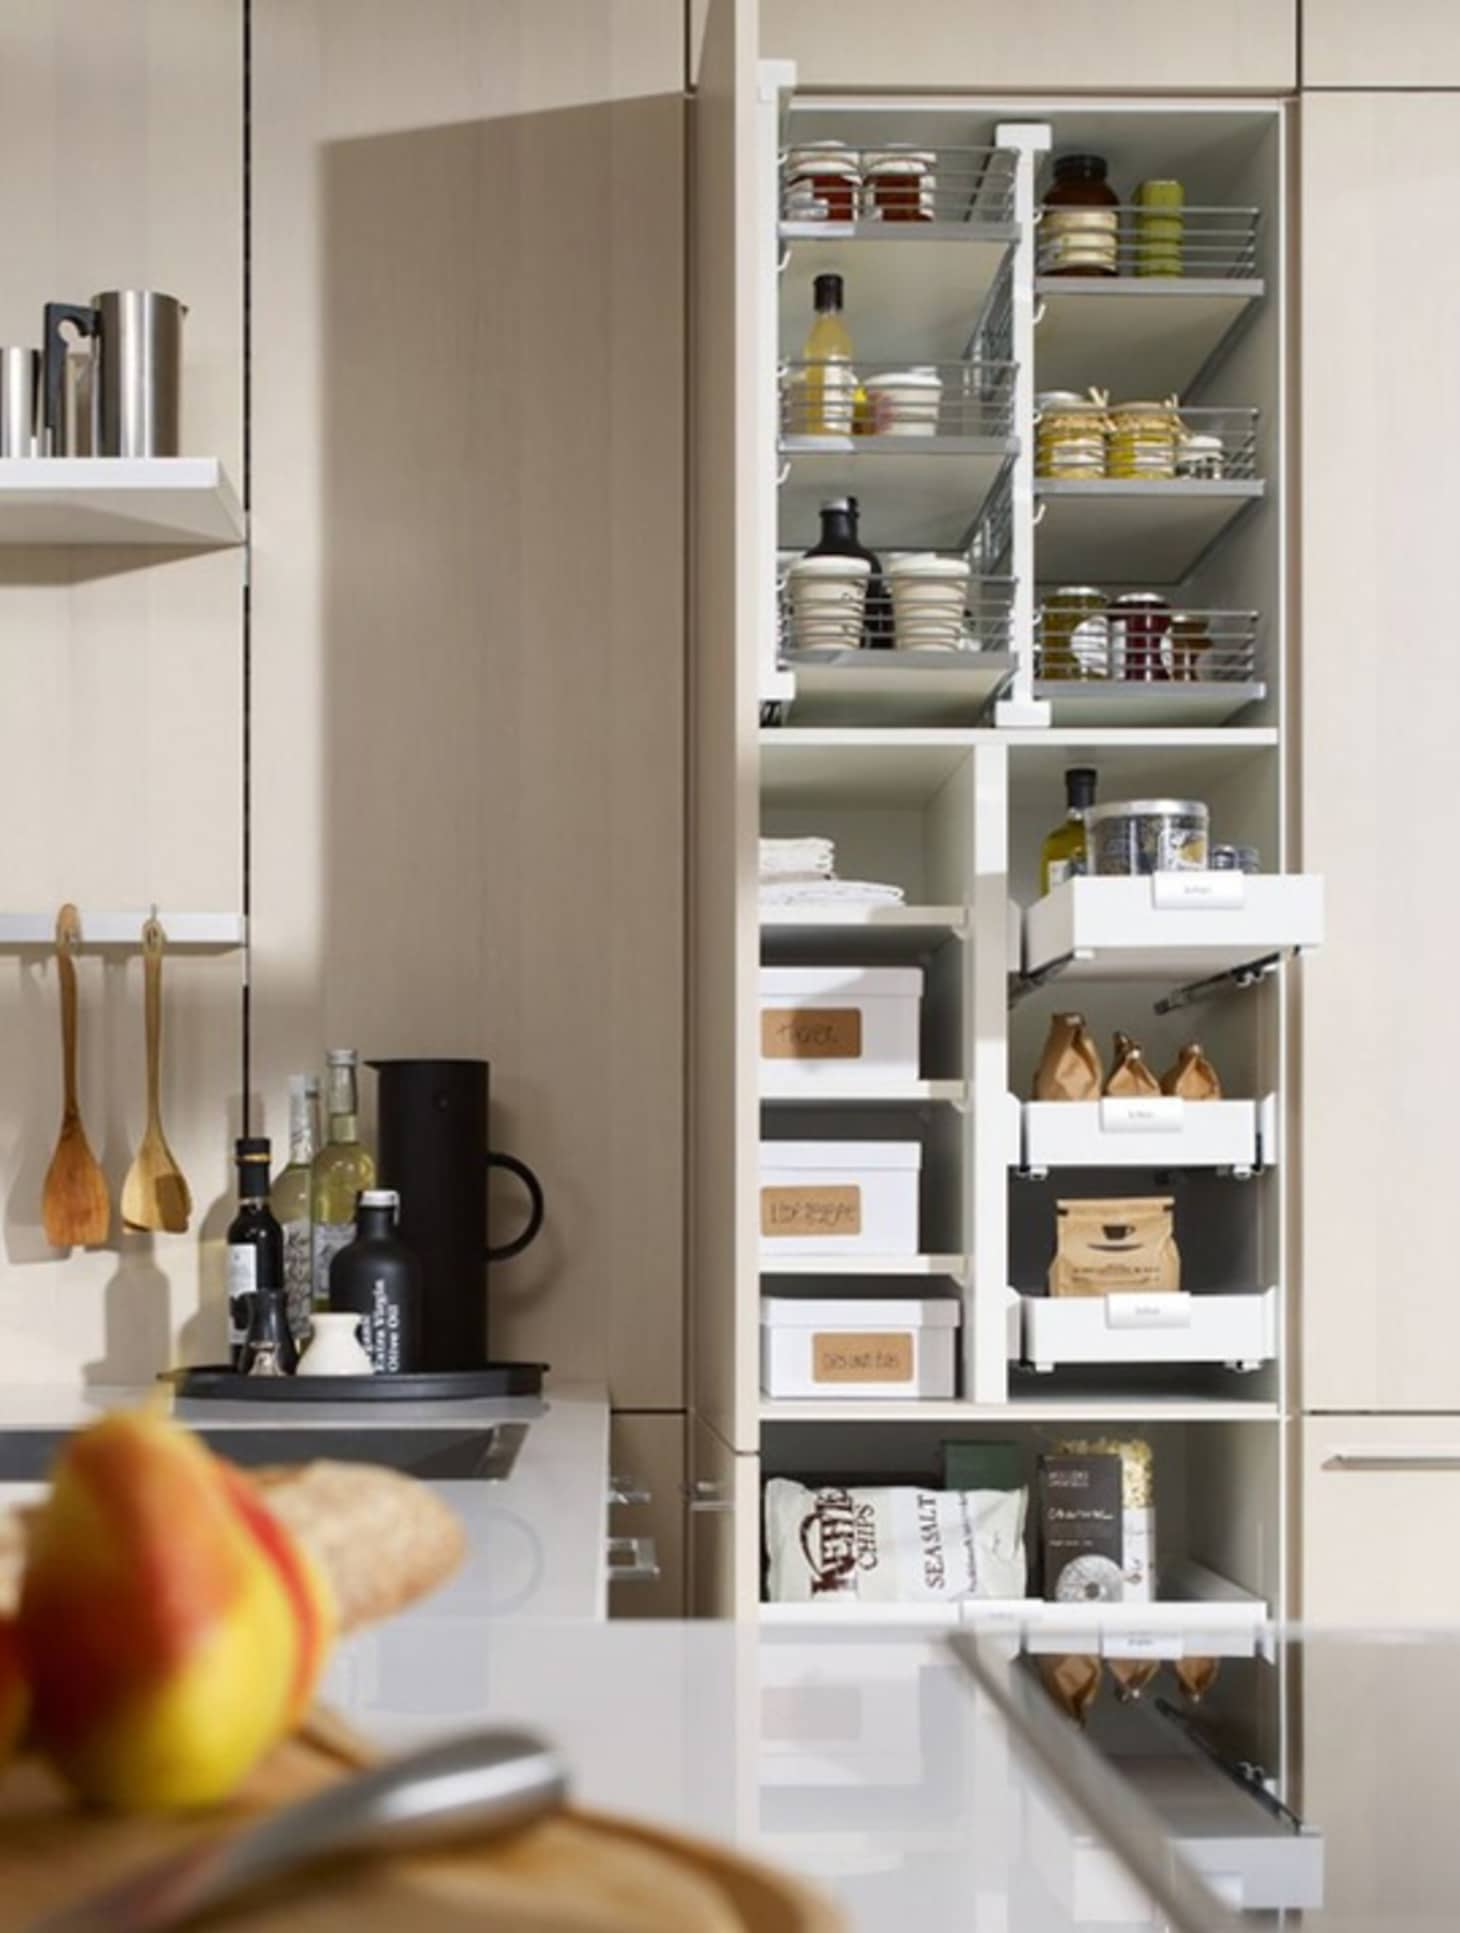 Where To Buy Pull Out Cabinet Shelves And Drawers Kitchn